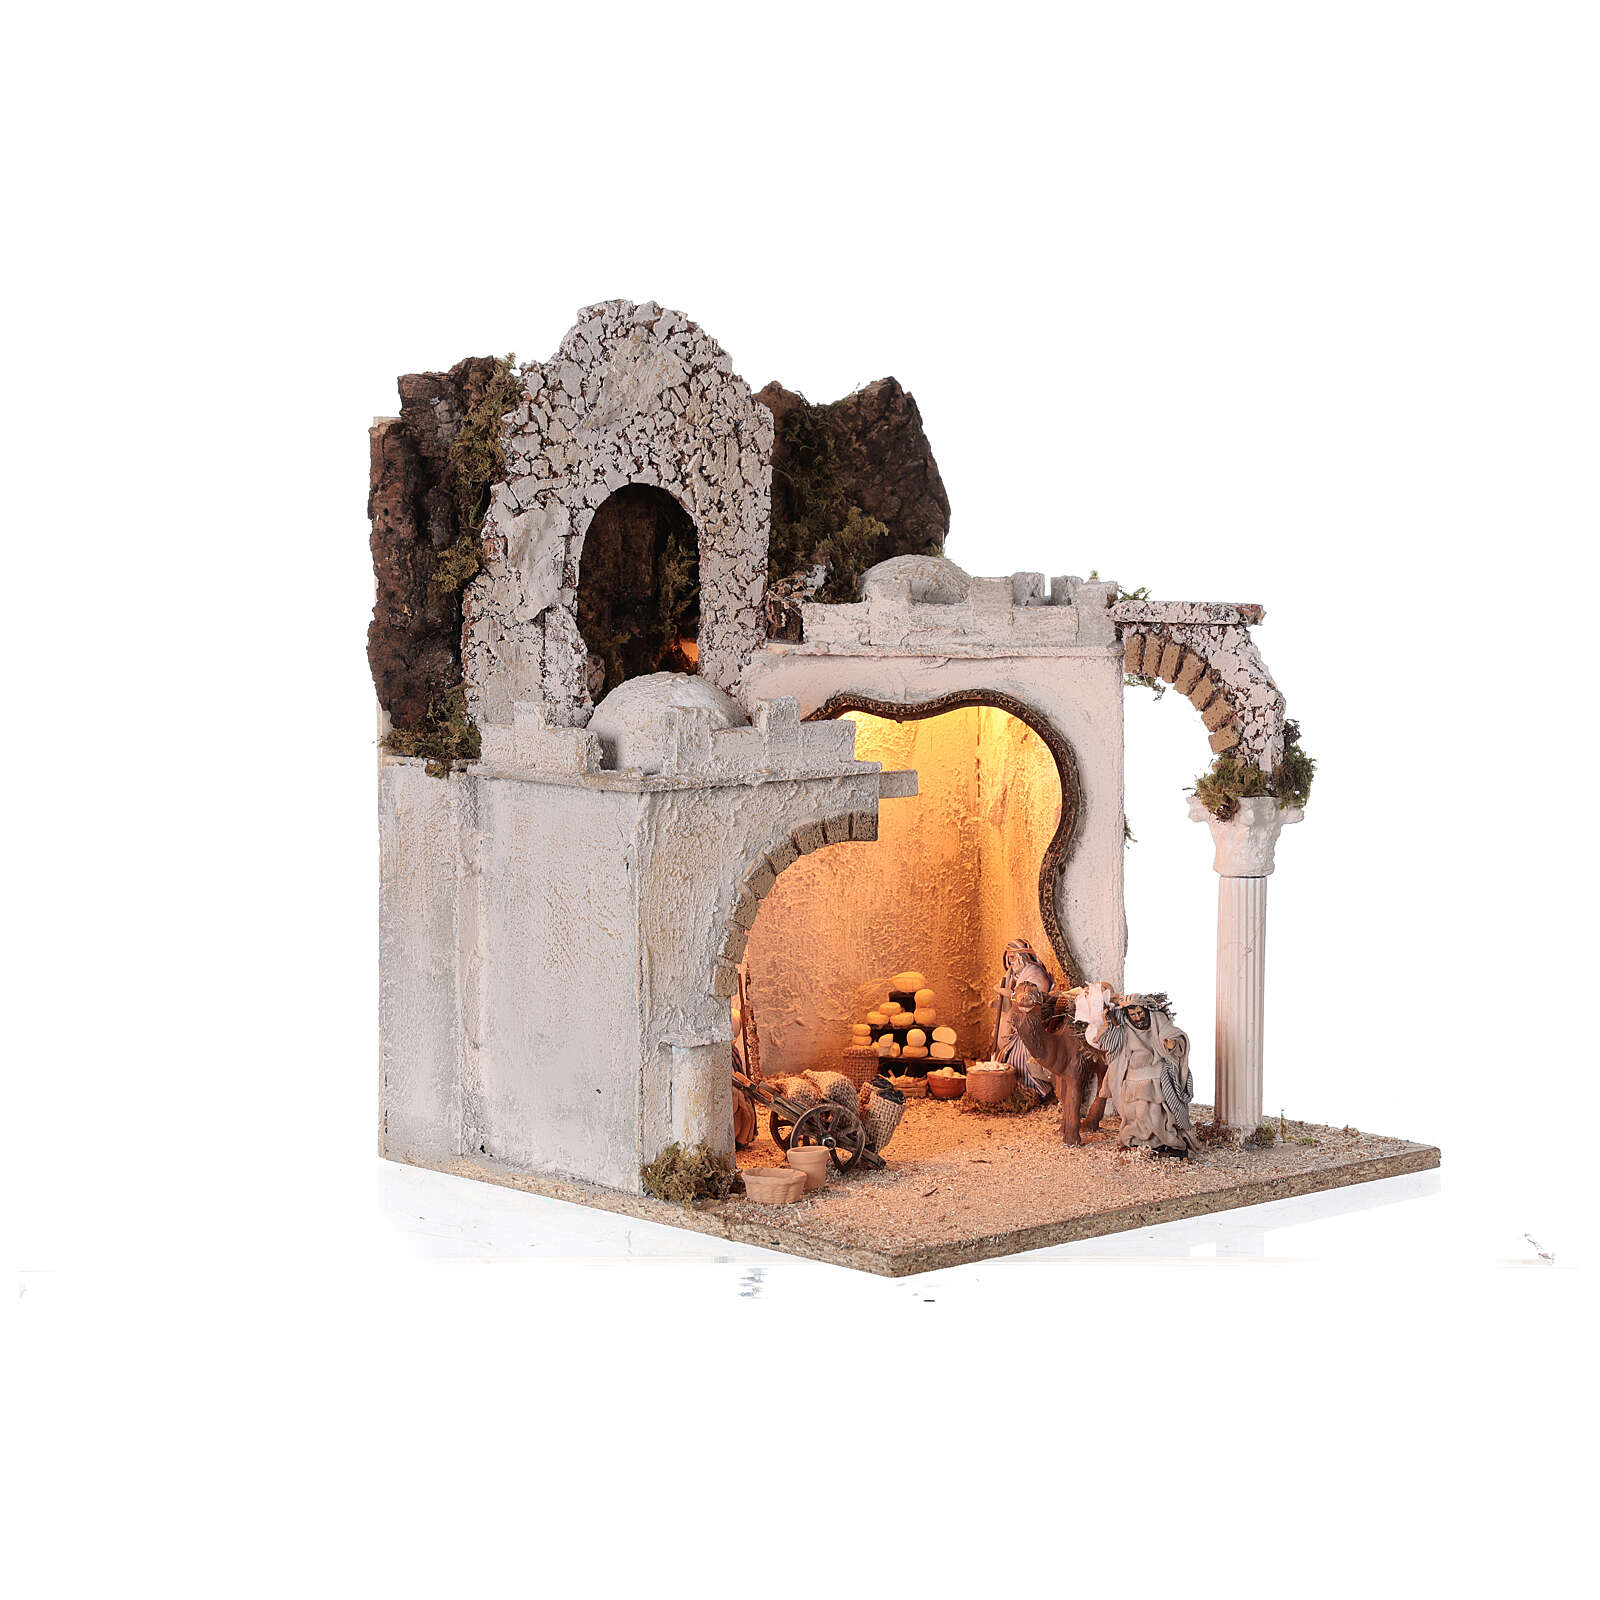 Arab setting (D) arches and market for Neapolitan Nativity Scene with 8 cm figurines 45x35x35 cm 4